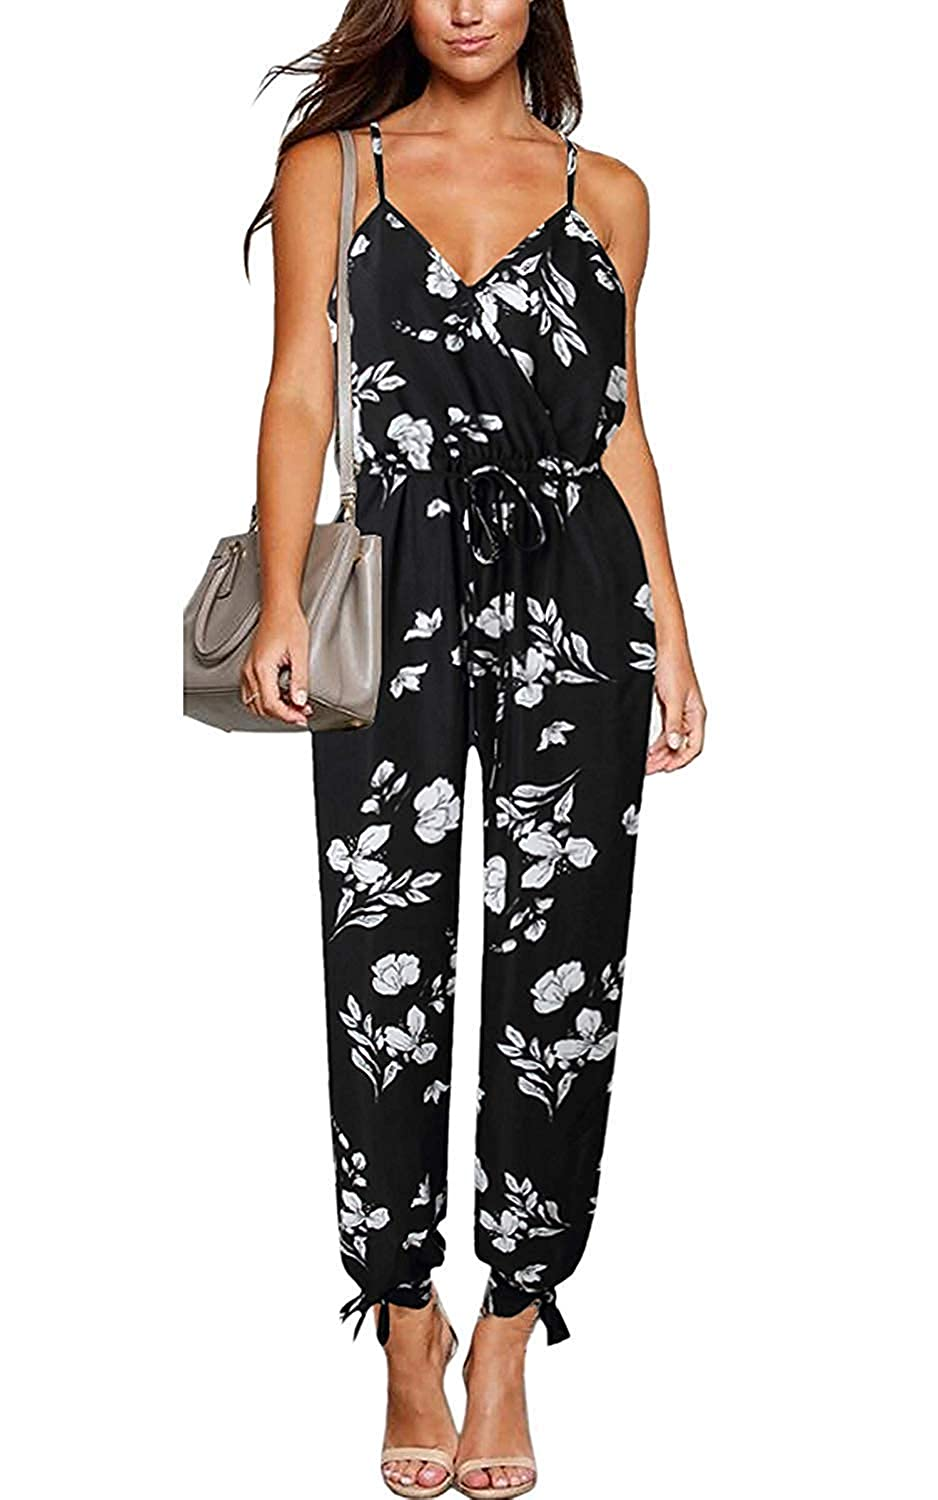 Women Wide Leg Jumpsuits - Summer Spaghetti Strap Floral Vacation Beach  Drawstring Pants Rompers